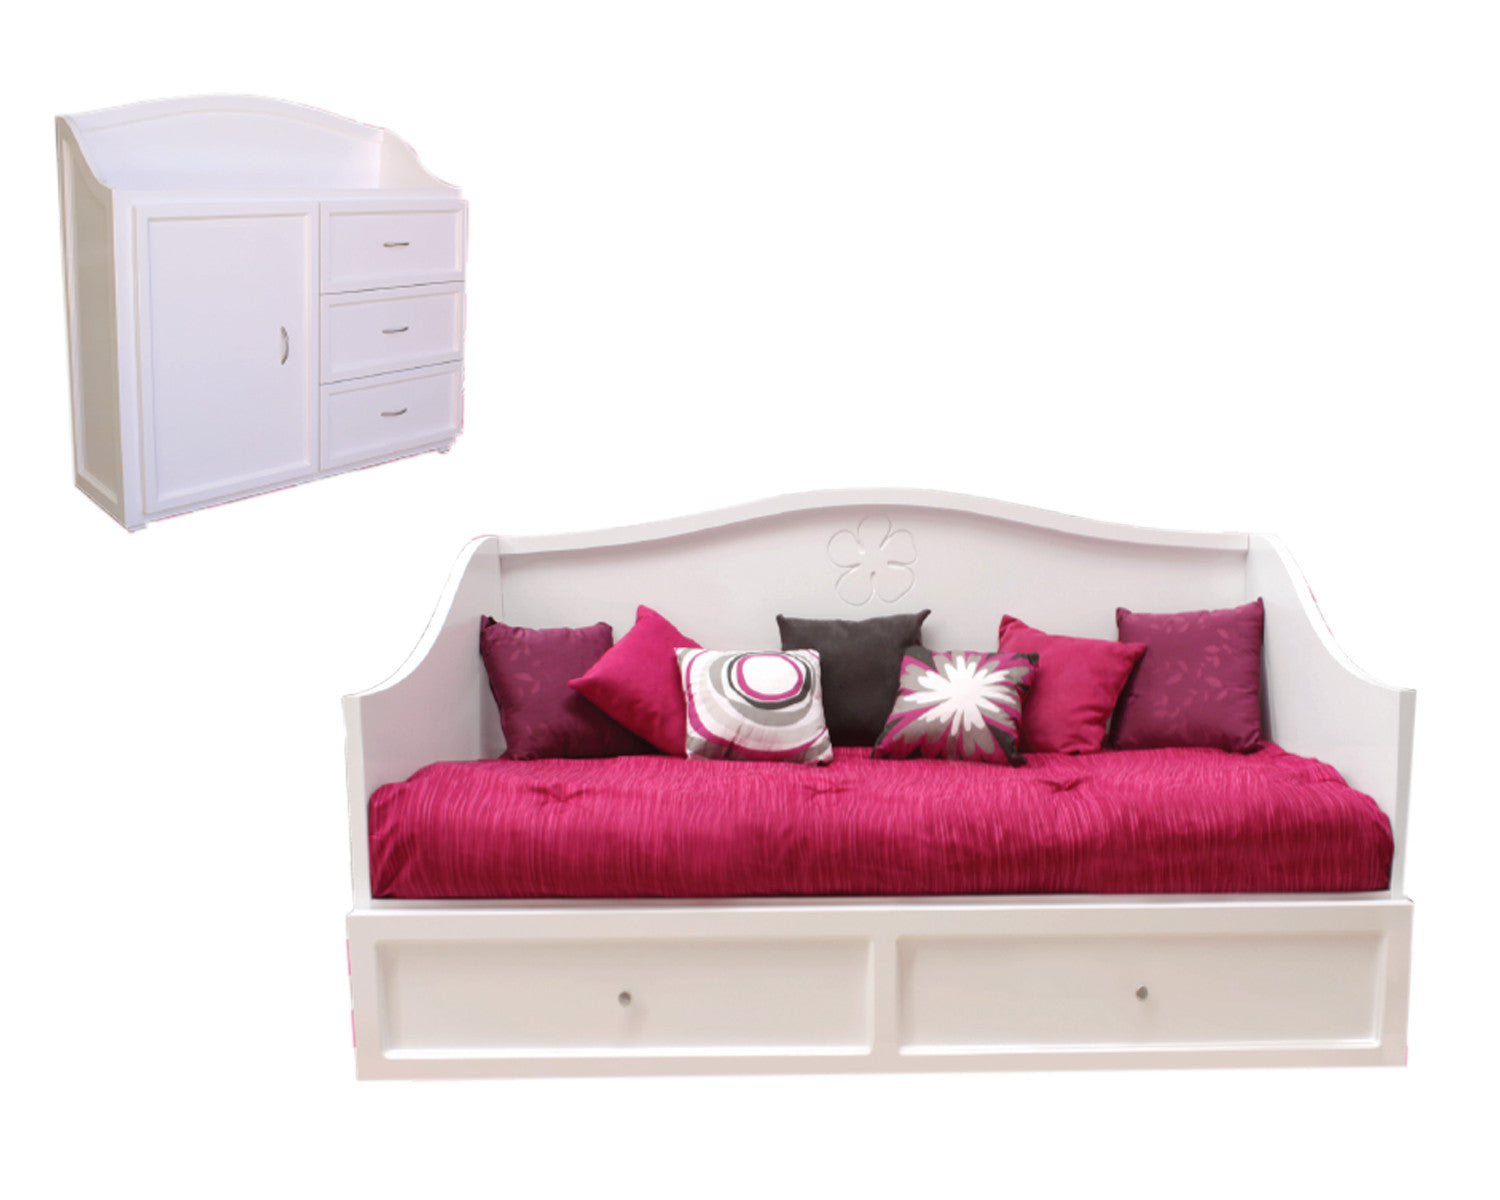 Rec mara individual dreams pink got muebles for Muebles recamaras monterrey